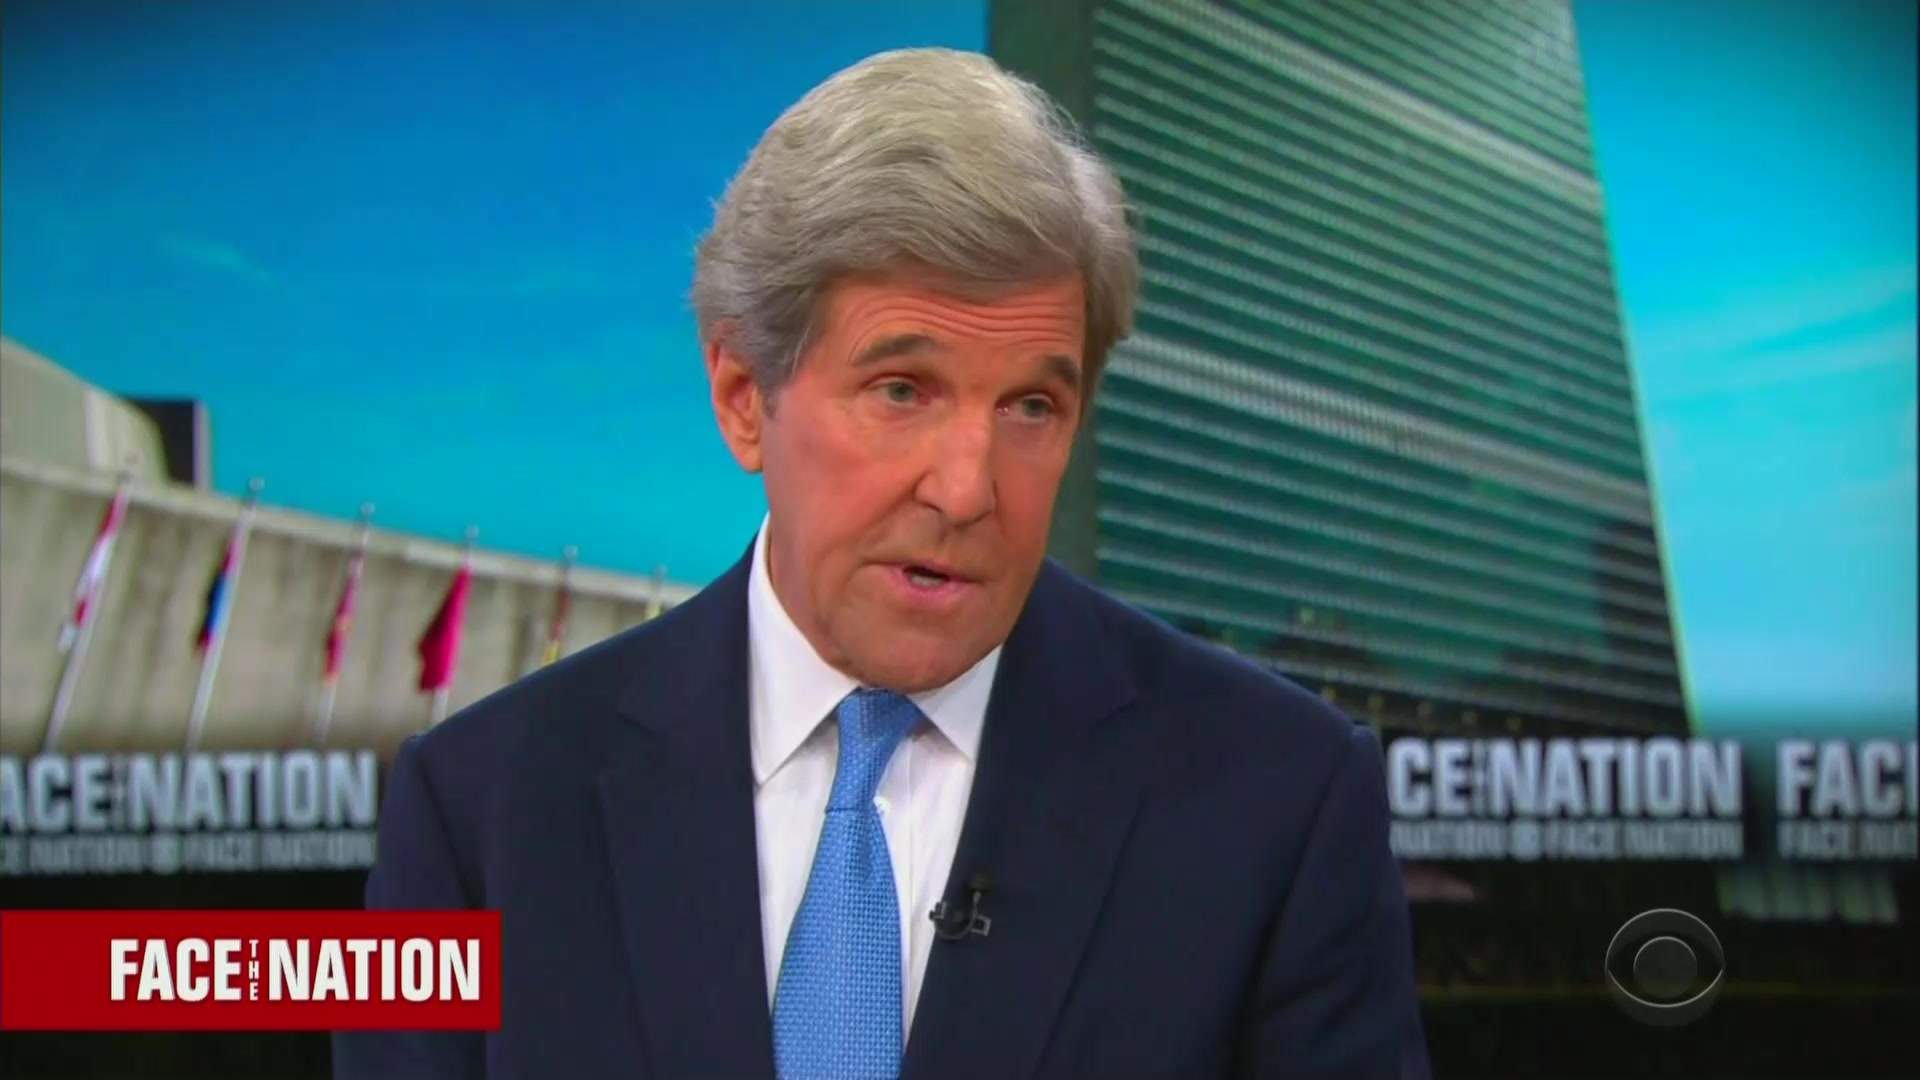 John Kerry Accuses GOP of 'Supporting a Cover-Up' for Trump on Ukraine Controversy: 'Deeply Disturbing'